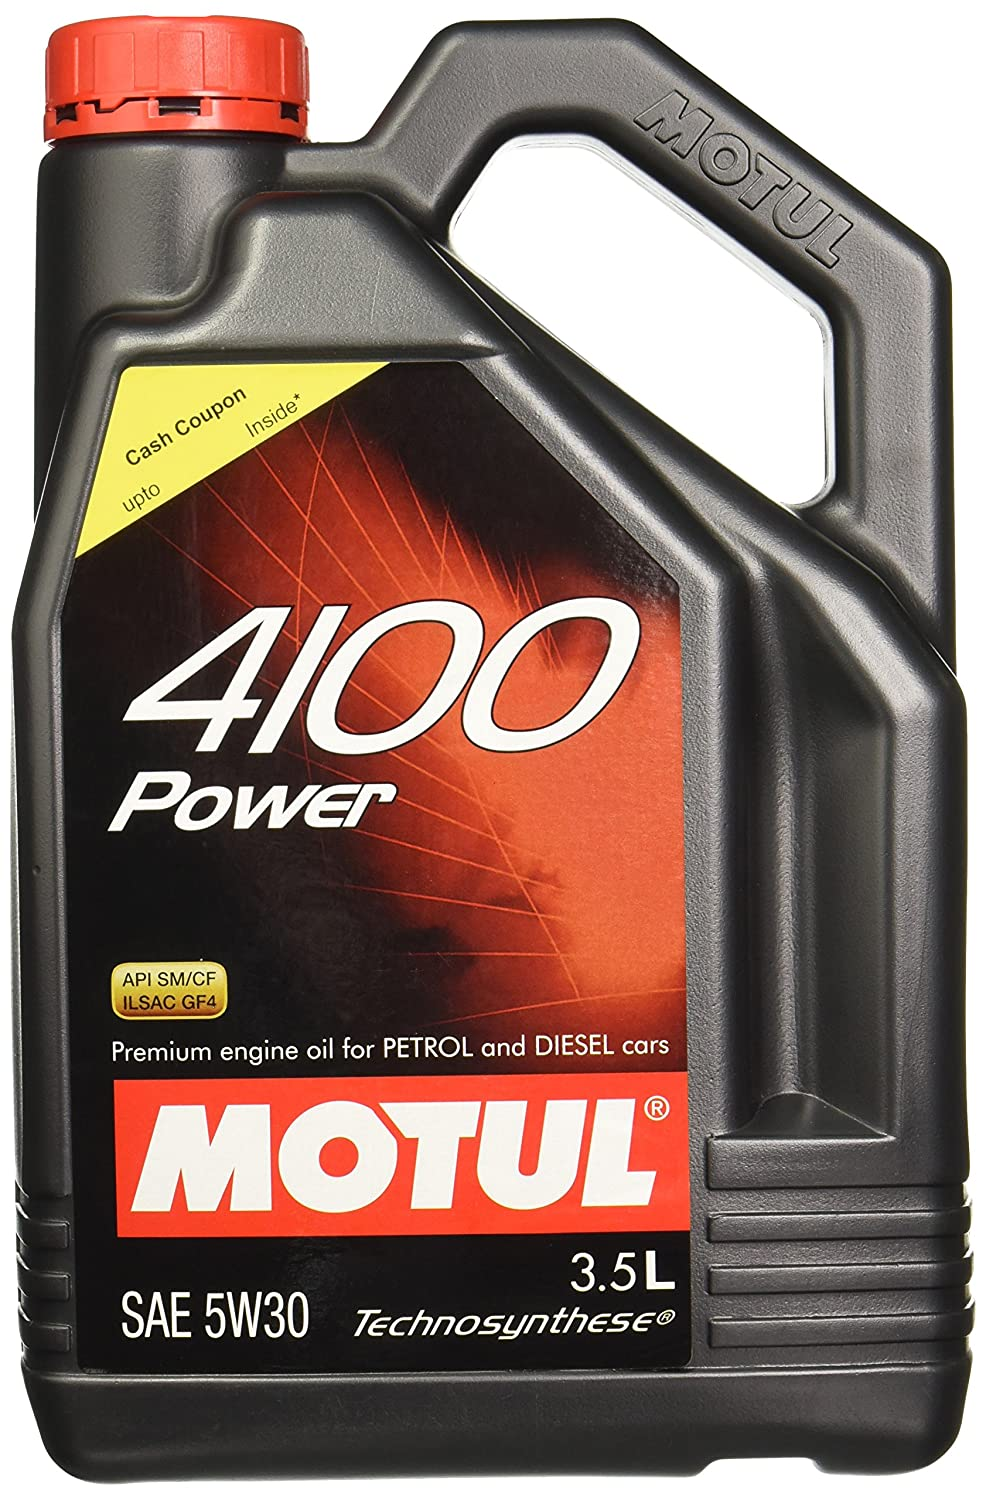 Engine Oils For Cars Buy Online At Best Prices Hyundai 3 5l Parts Breakdown Motul 4100 Power Sae 5w30 Semi Synthetic Oil Petroldieselcng